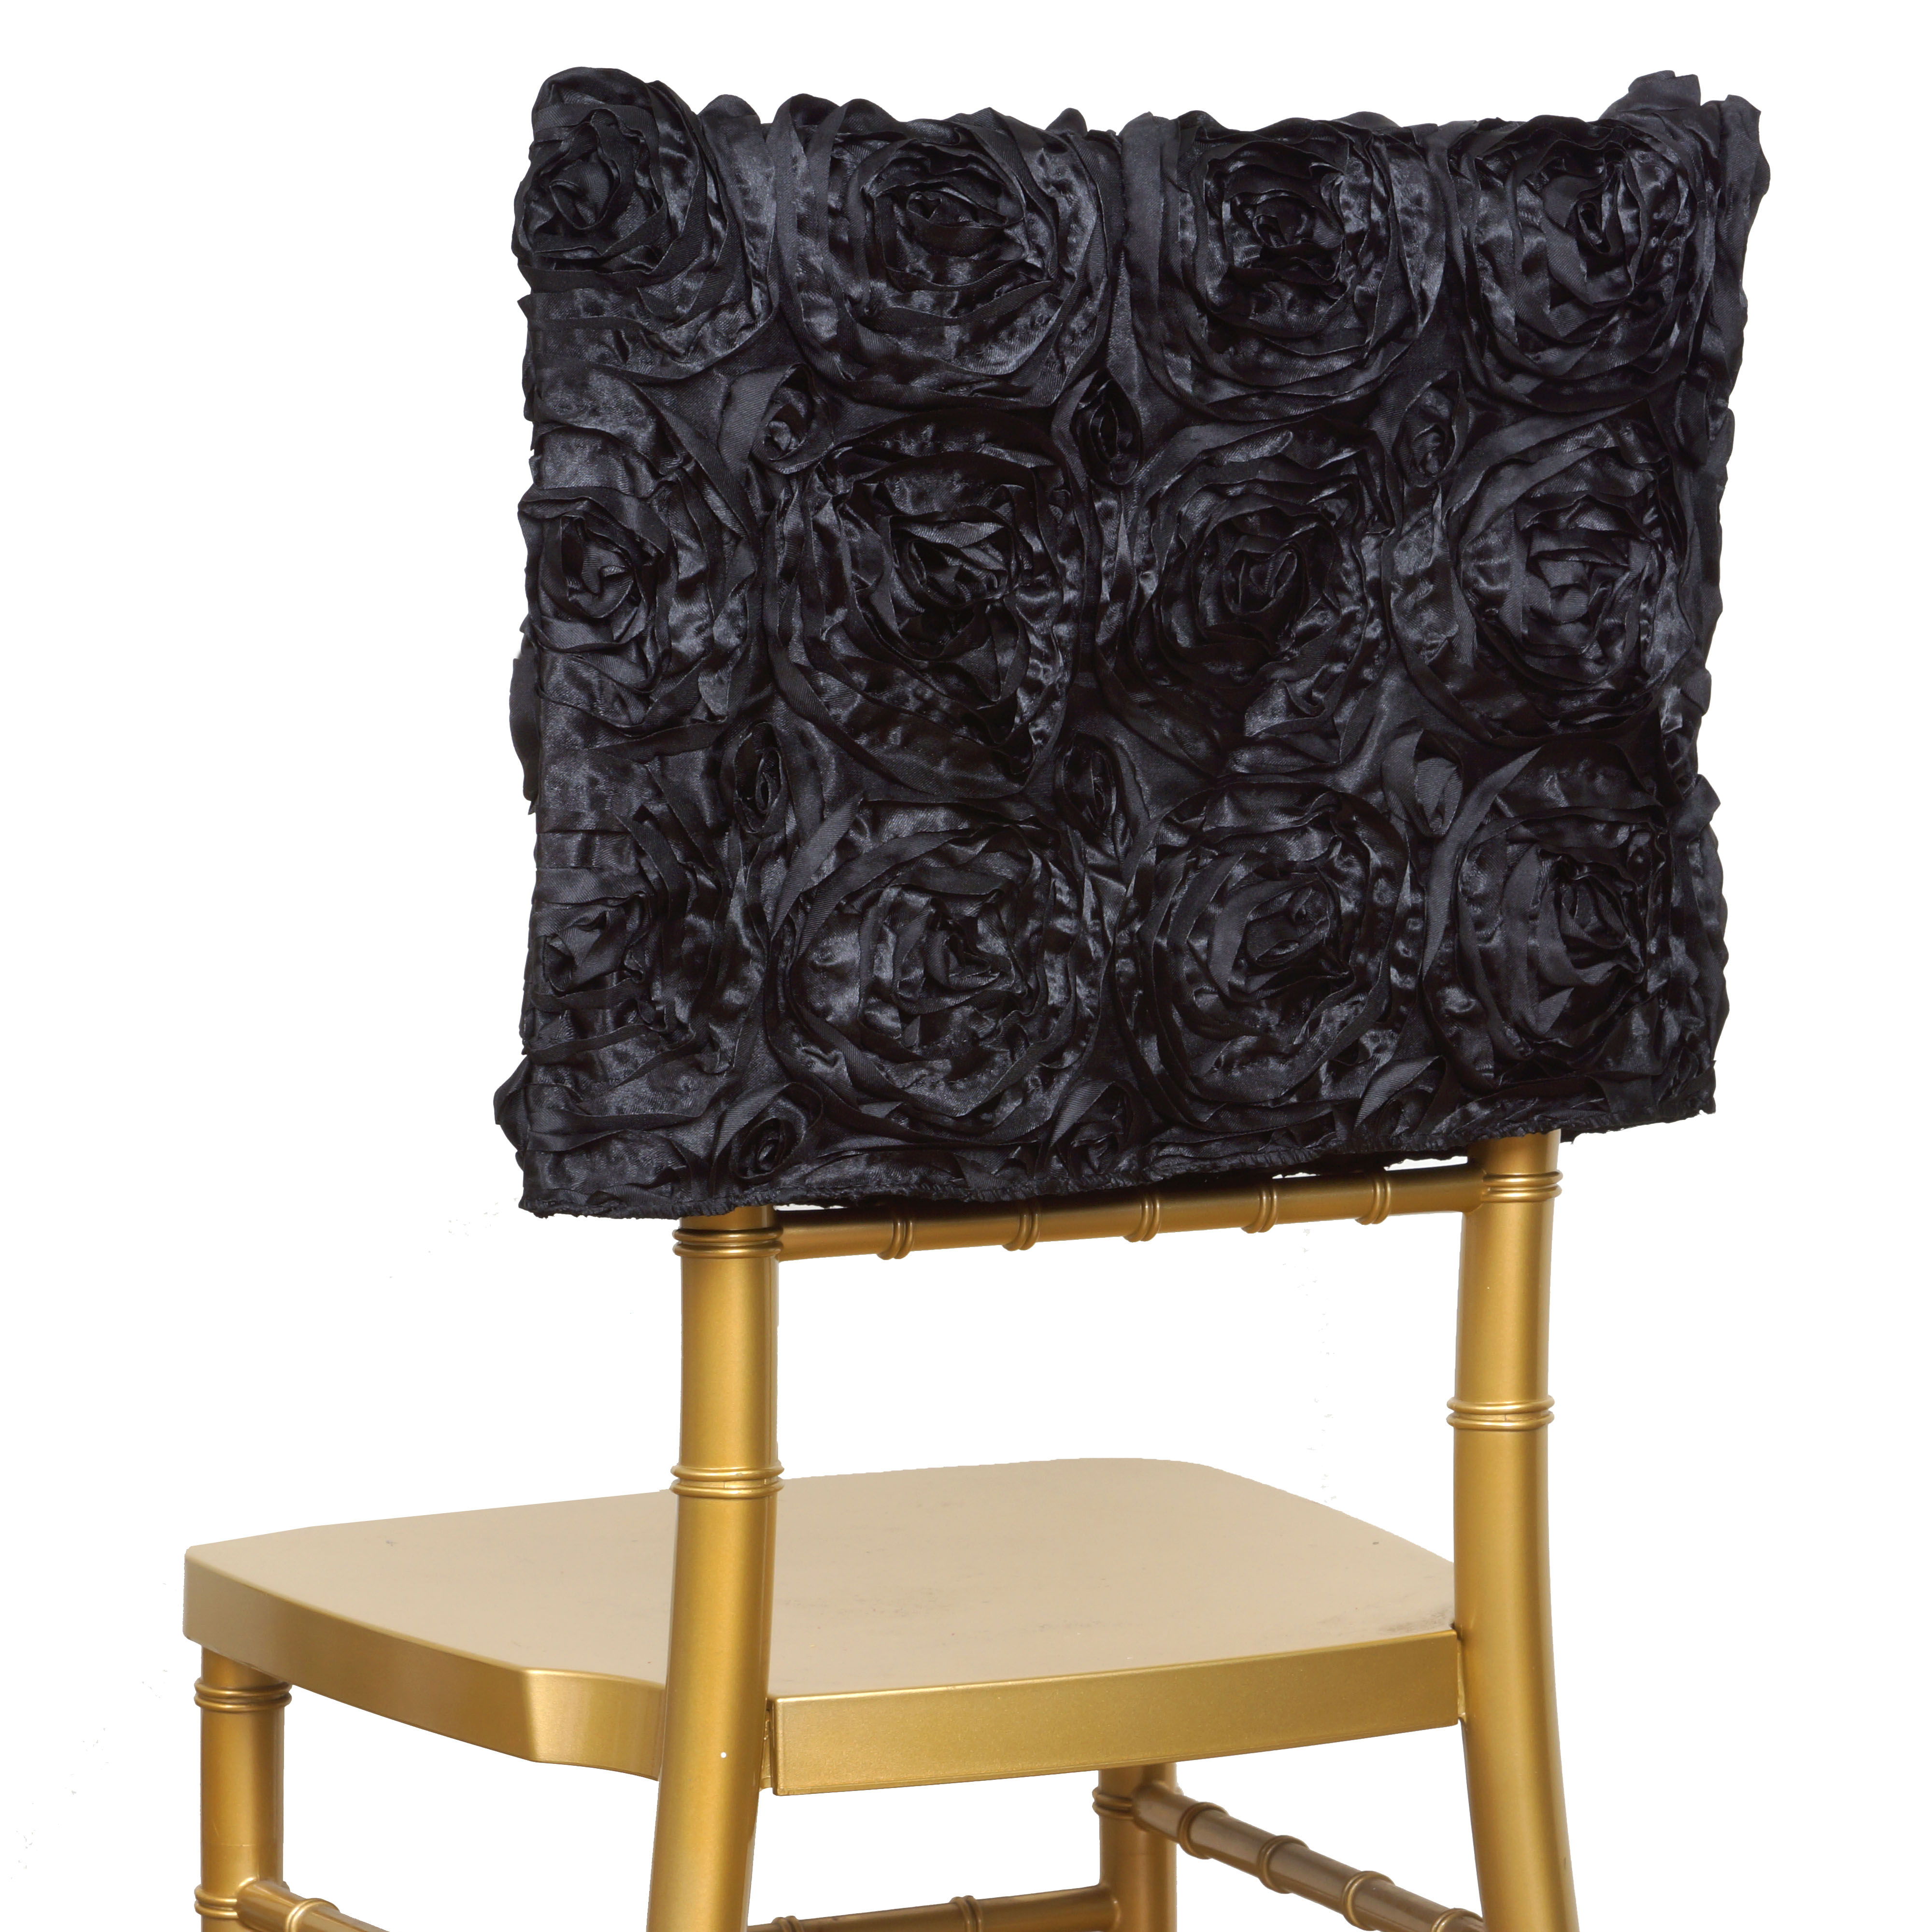 decorative chair covers wedding kids wooden table and set 100 pcs satin ribbon roses square cap